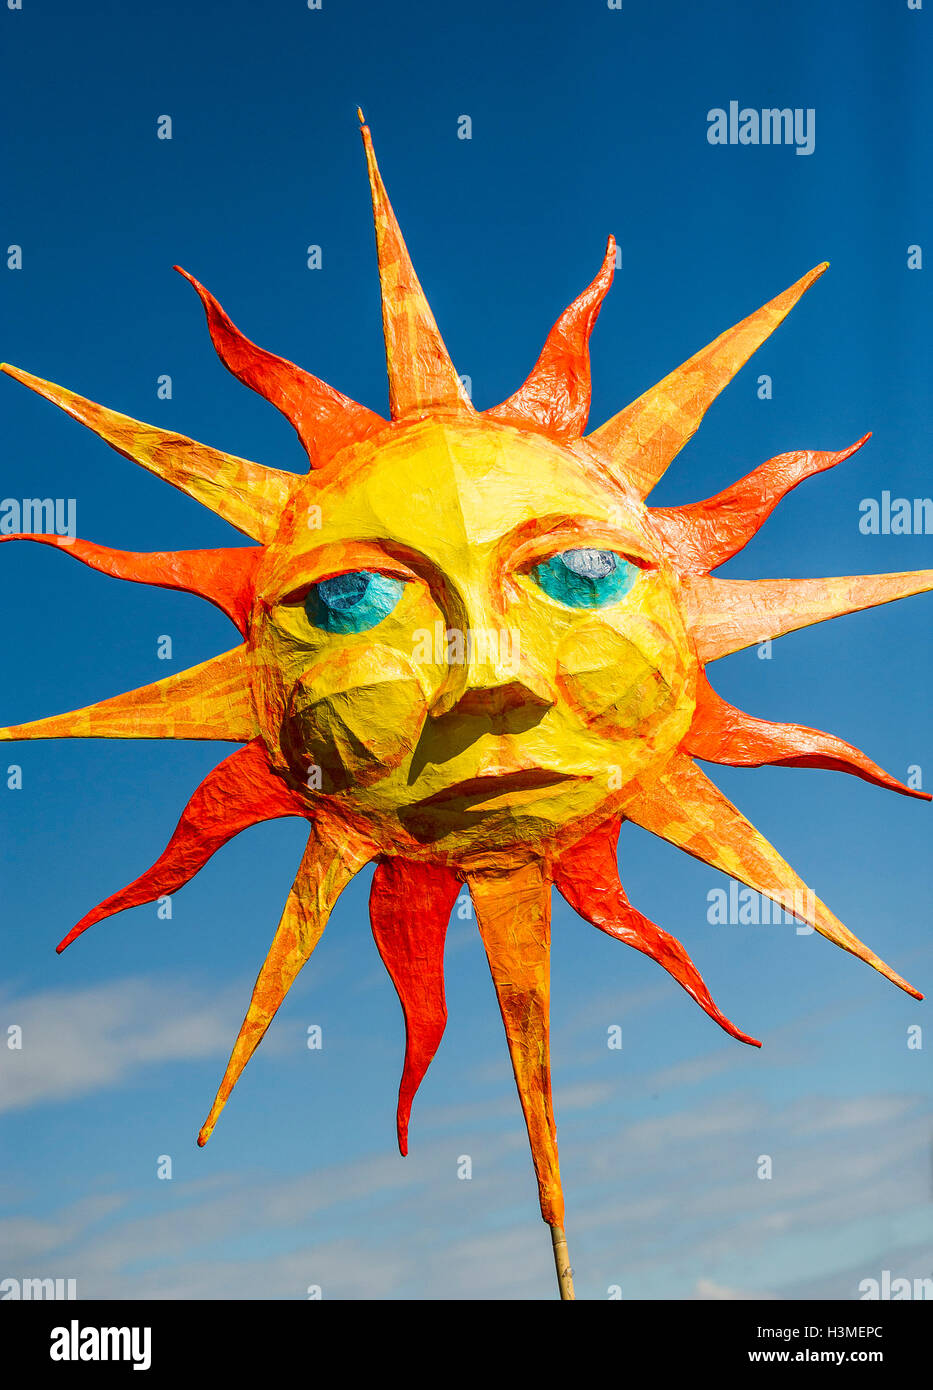 A papier mache representation of the sun in the Penryn Festival in Cornwall - Stock Image